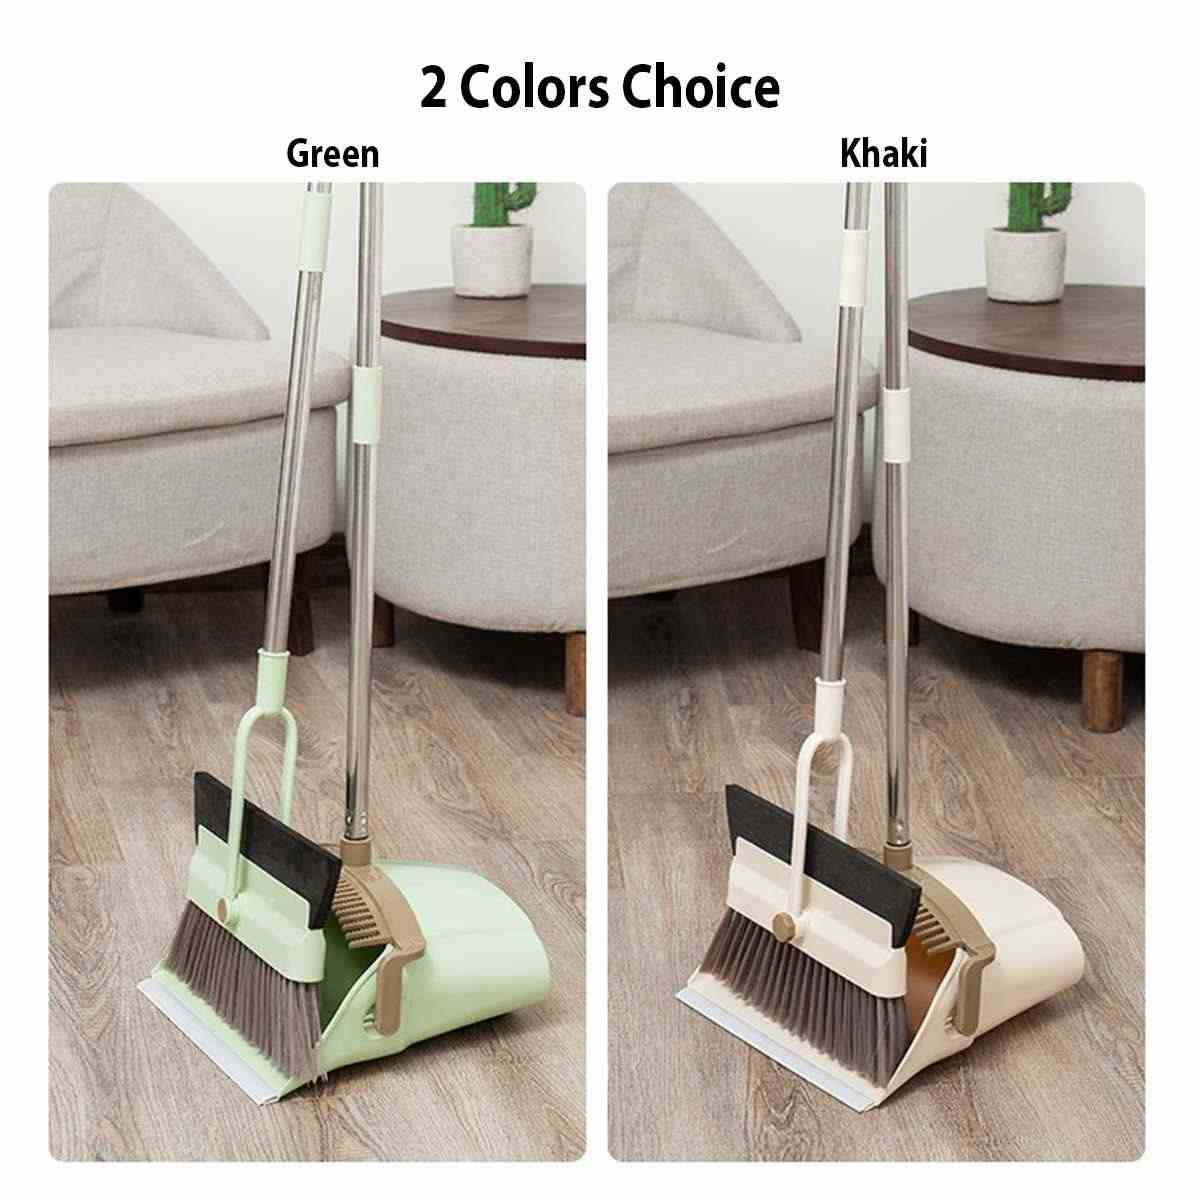 Household Cleaning Tool Broom Dustpan Set Anti-winding Foldable Rotating Soft Bristle Floor Non-Slip Handle